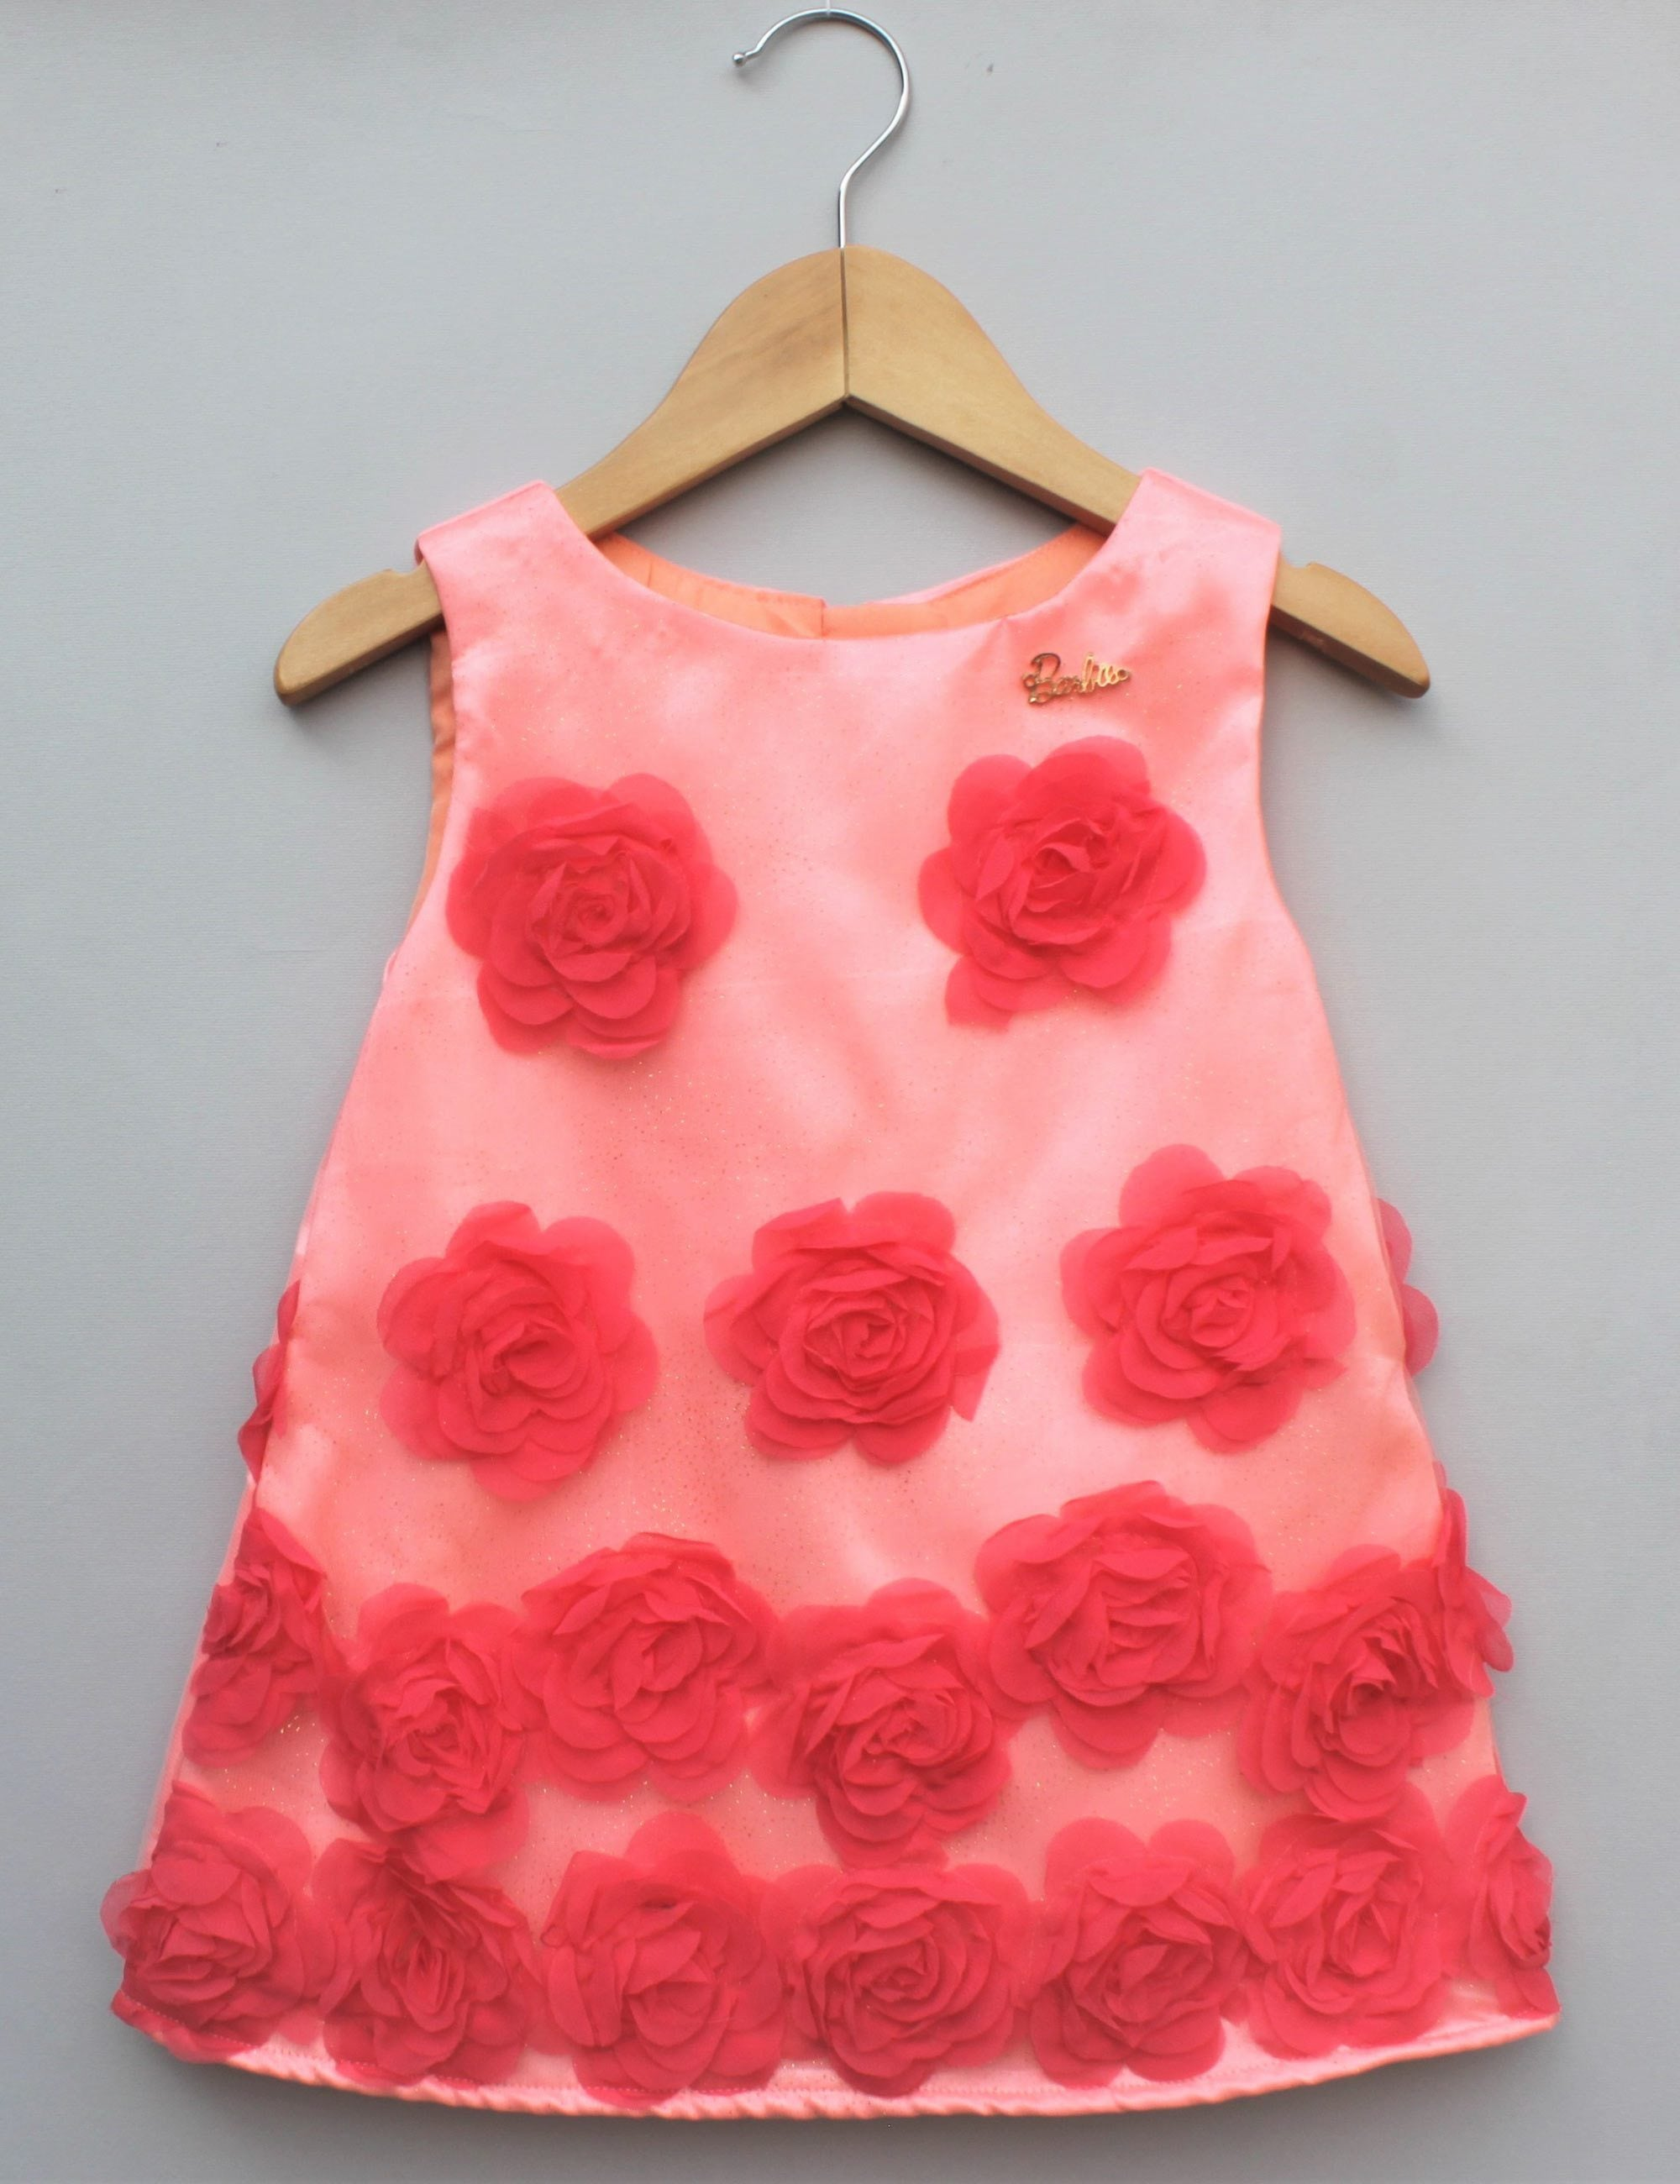 3D pink rose party dress